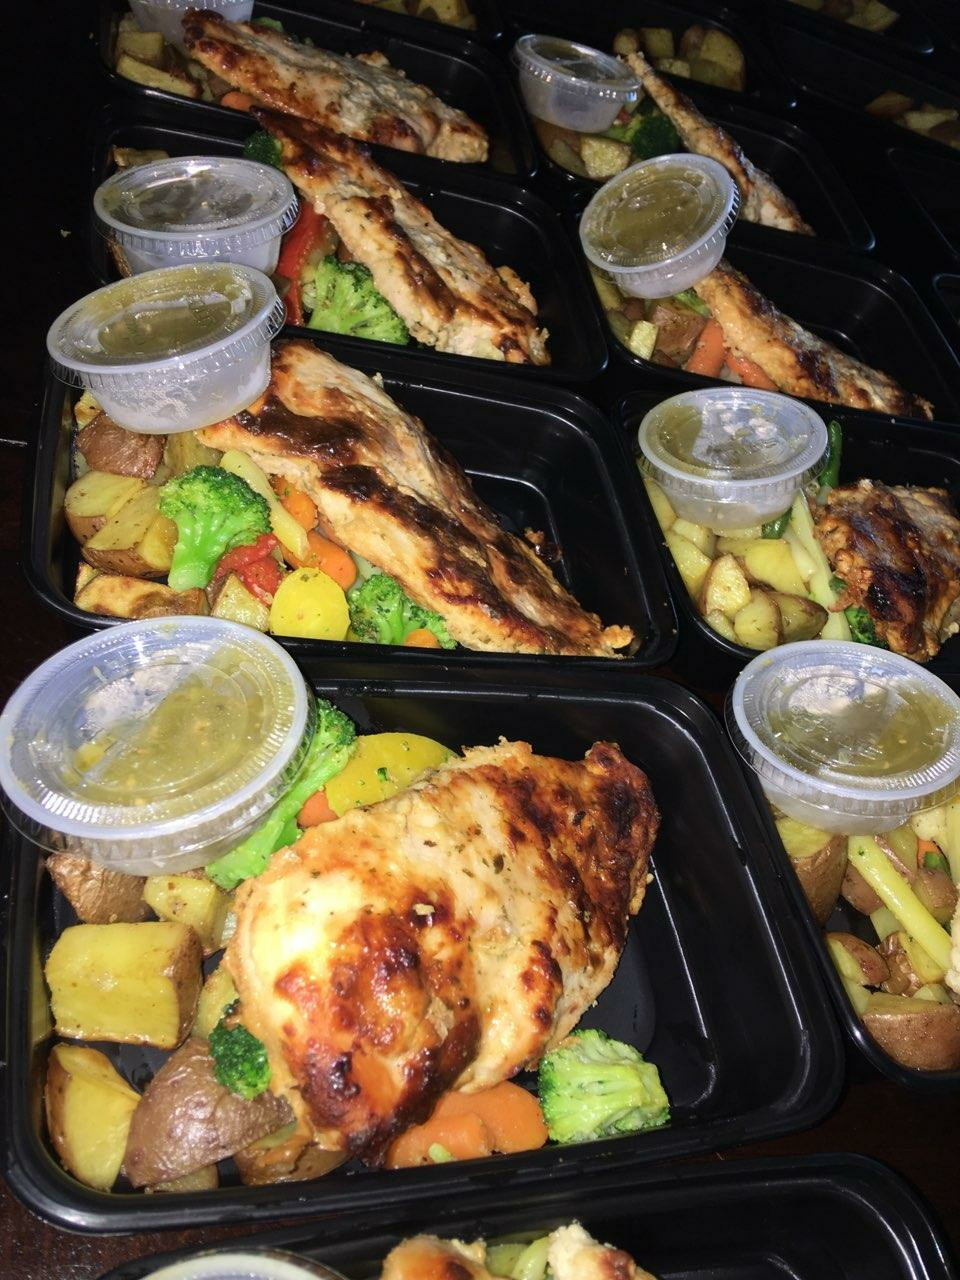 Texas' Baked Chicken  Delicious baked chicken breast served with roasted seasoned potato and veggie mix.